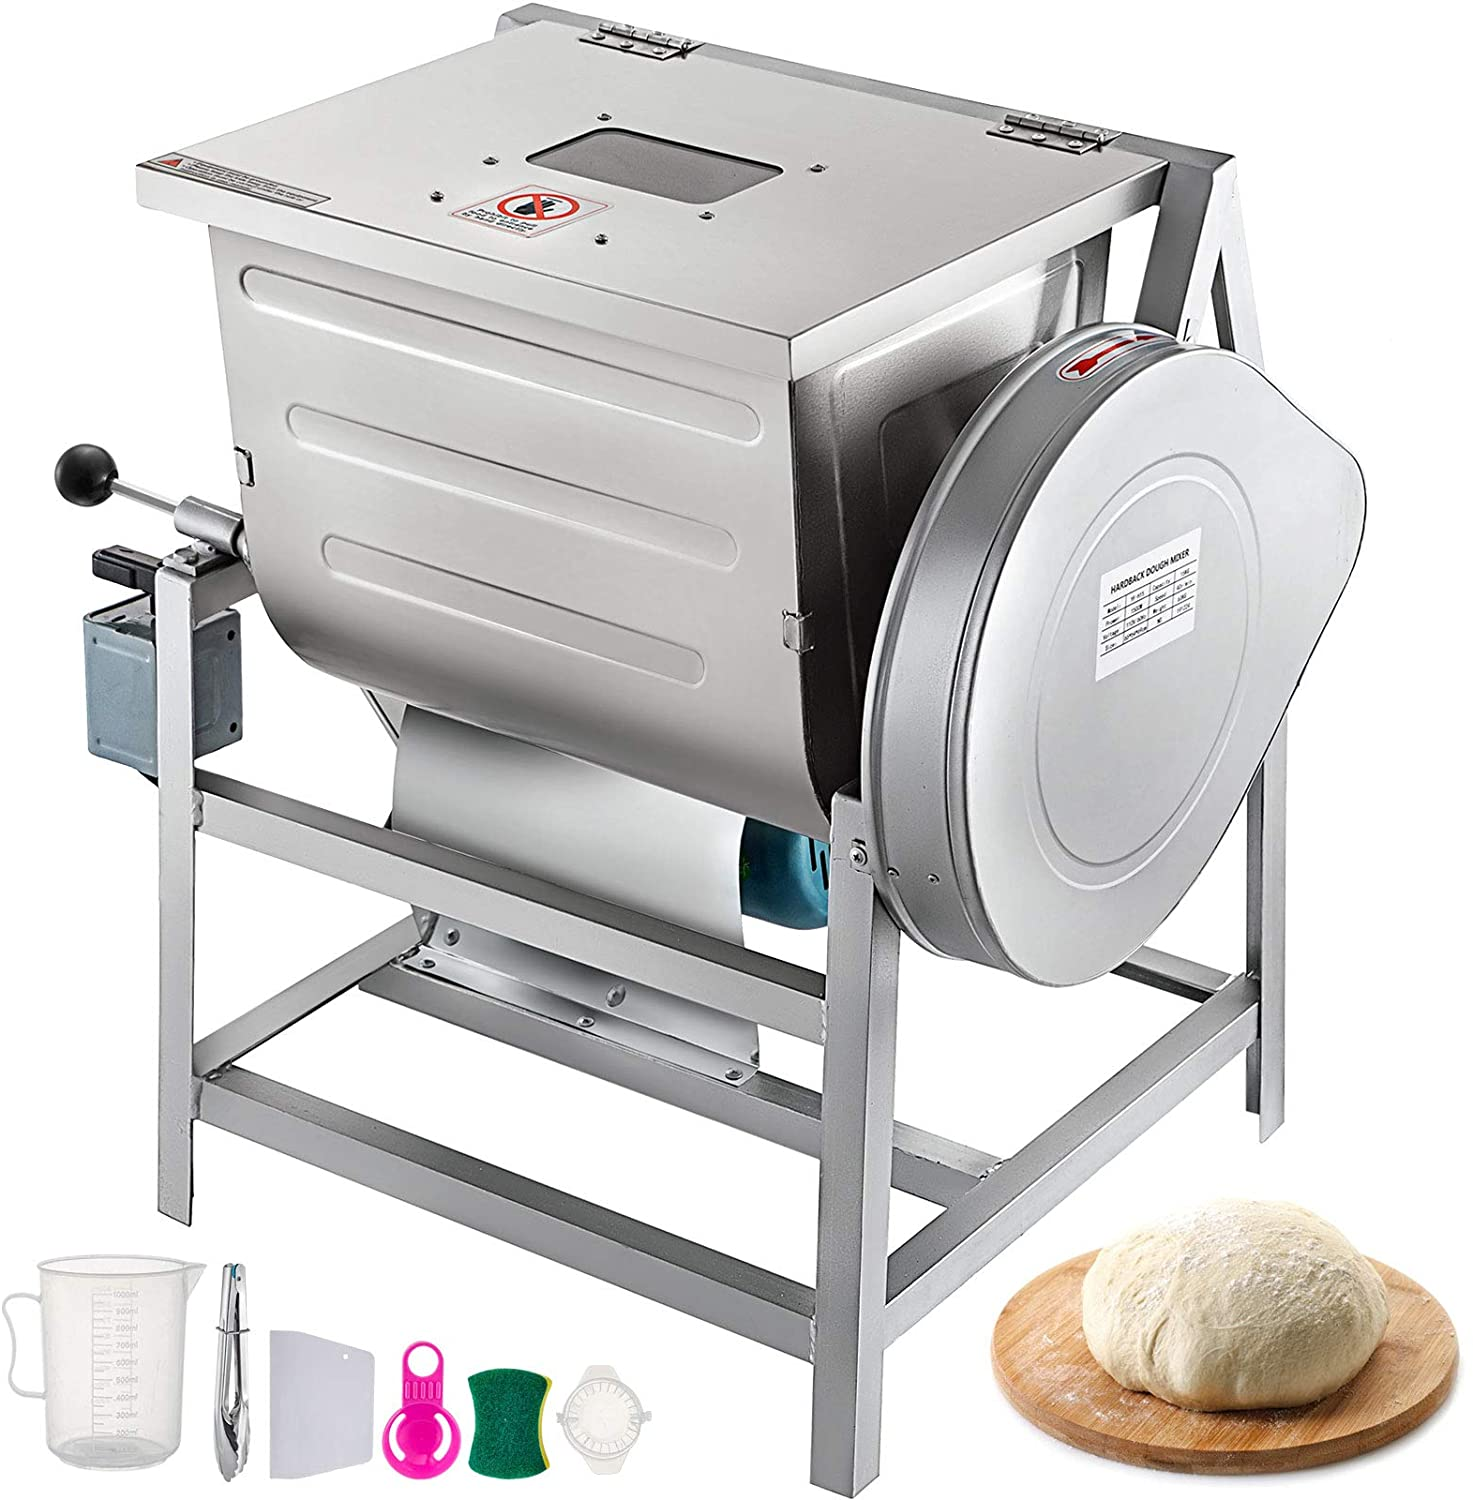 VEVOR 110V Commercial Dough Mixer 25kg, Kneading Capacity 50 QT, Flour Mixer 2200W, with Visible Lid, Heavy-Duty Pizza Dough Mixer 304 Stainless Steel, Professional Kitchen Equipment